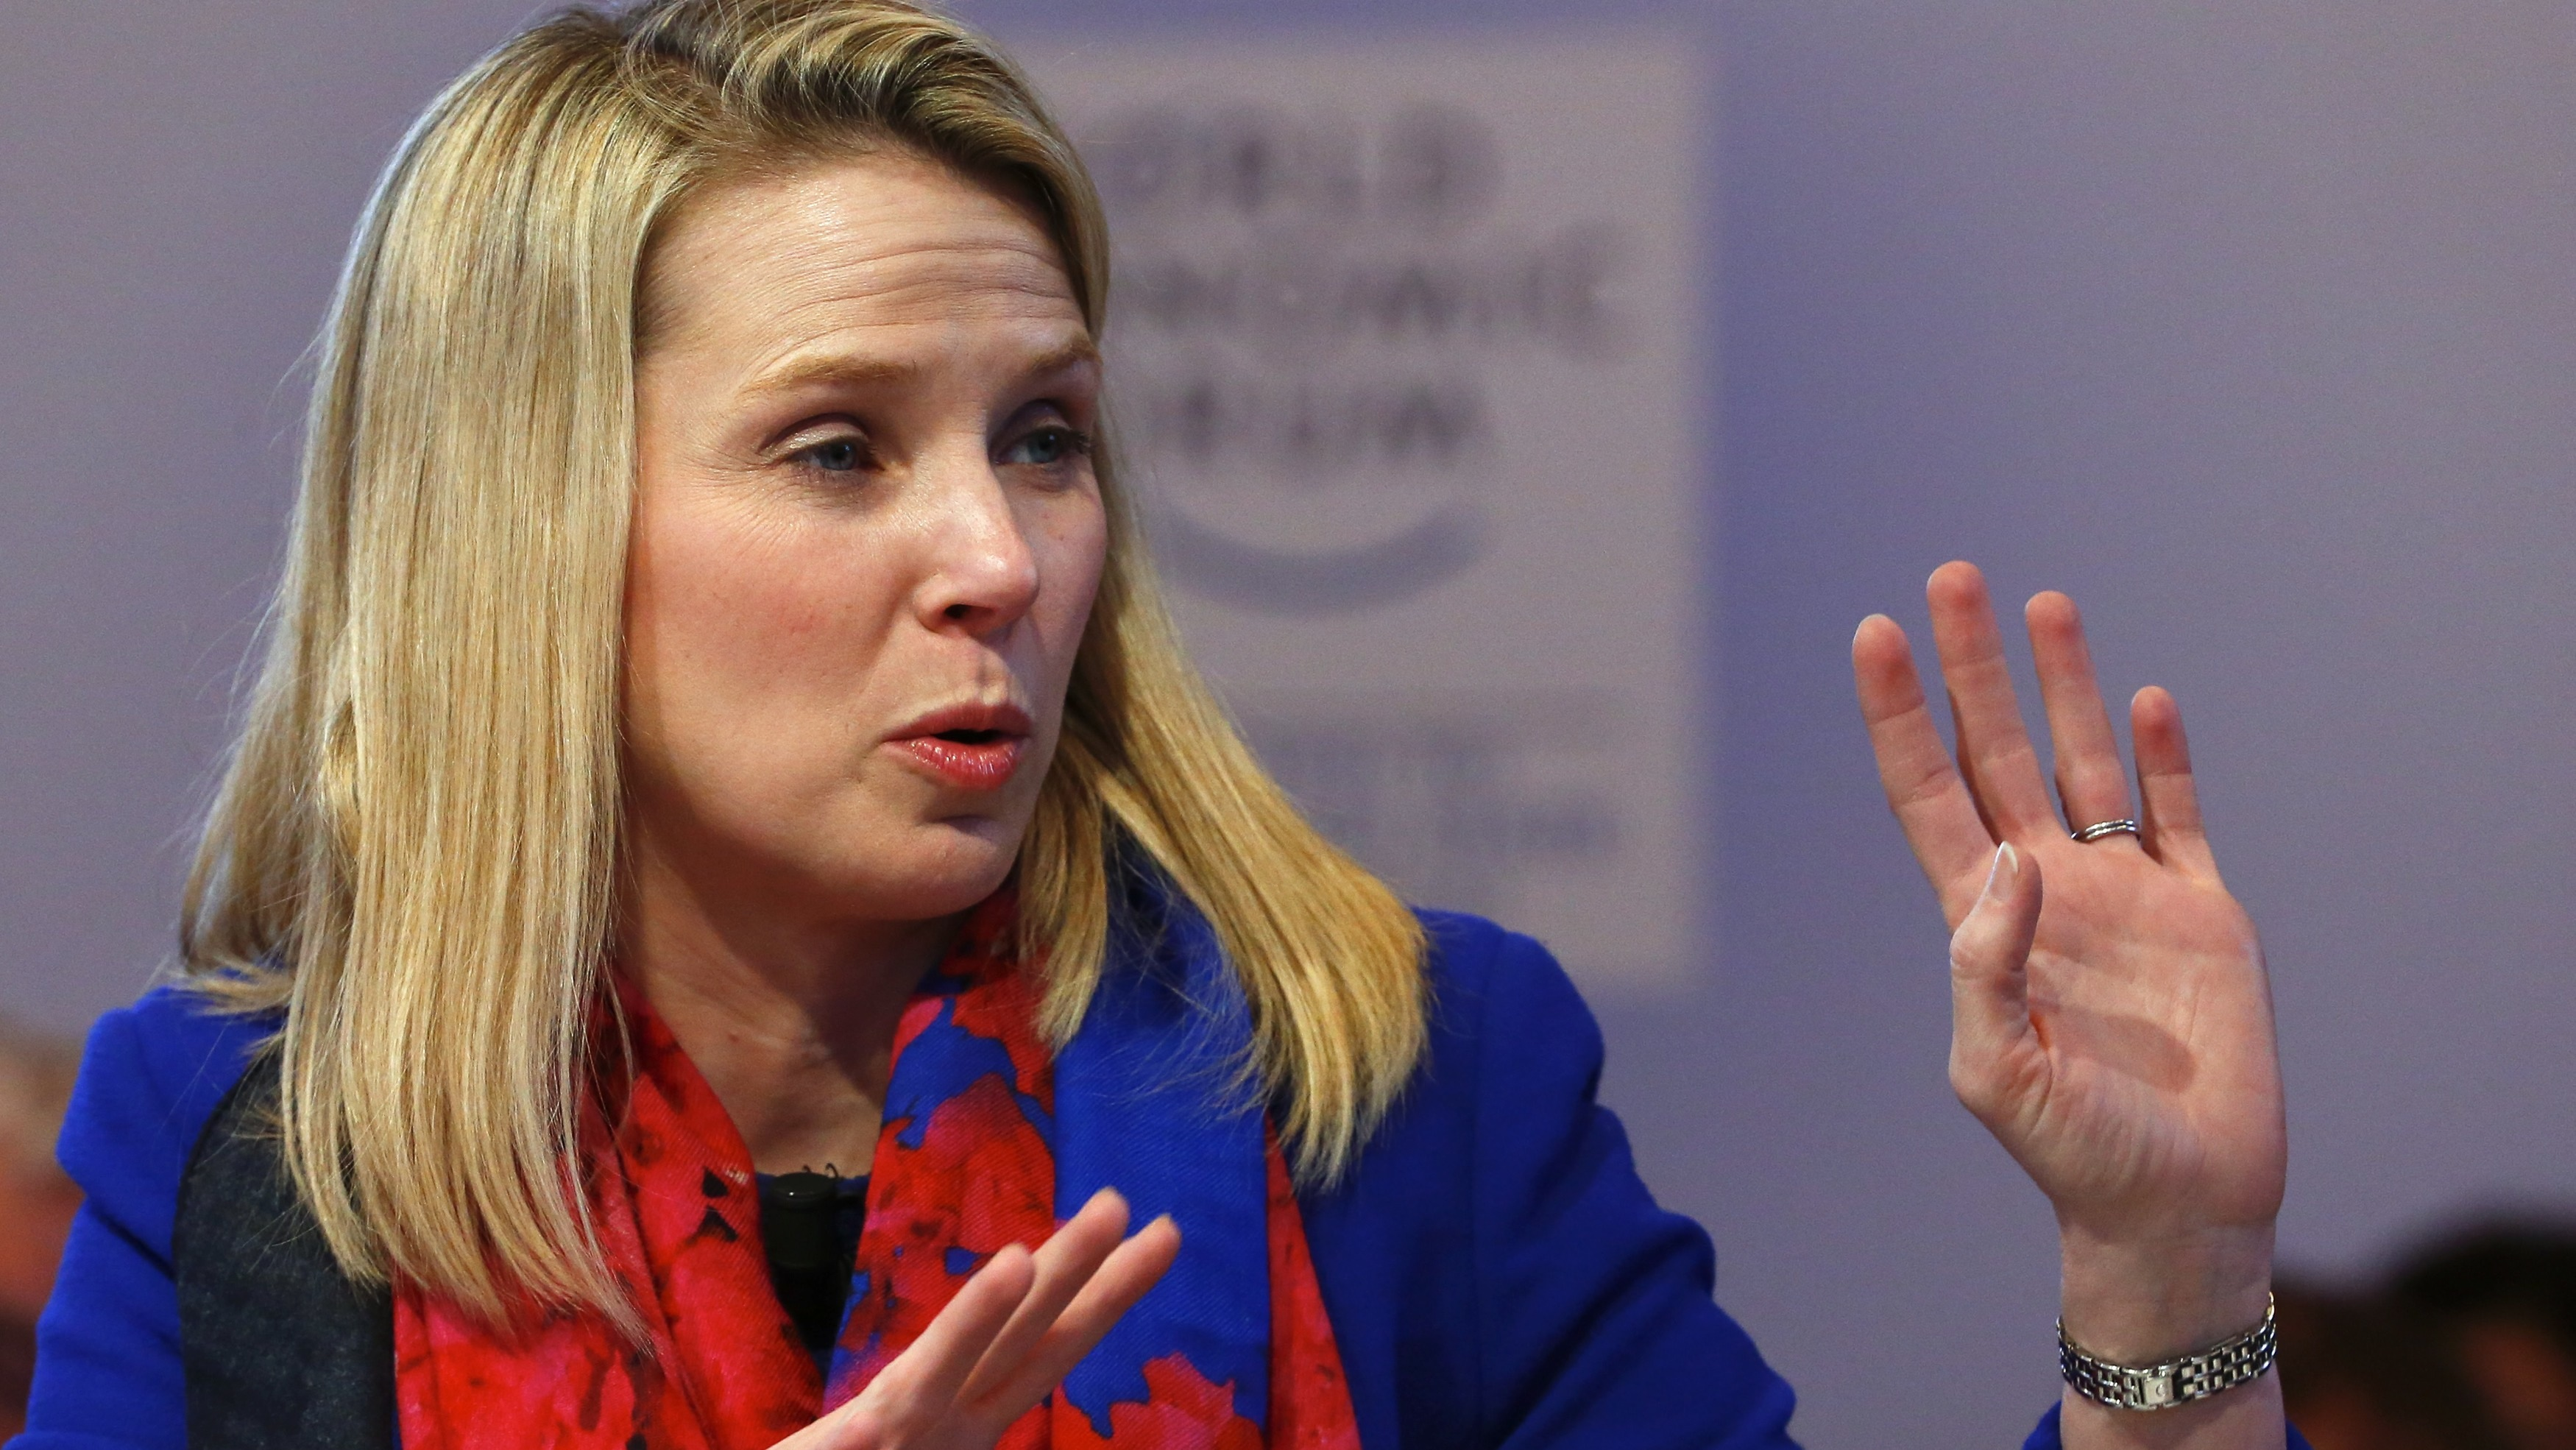 "Yahoo CEO Marissa Mayer gestures before the session ""In Tech We Trust"" in the Swiss mountain resort of Davos January 22, 2015. More than 1,500 business leaders and 40 heads of state or government attend the Jan. 21-24 meeting of the World Economic Forum (WEF) to network and discuss big themes, from the price of oil to the future of the Internet. This year they are meeting in the midst of upheaval, with security forces on heightened alert after attacks in Paris, the European Central Bank considering a radical government bond-buying programme and the safe-haven Swiss franc rocketing. REUTERS/Ruben Sprich"